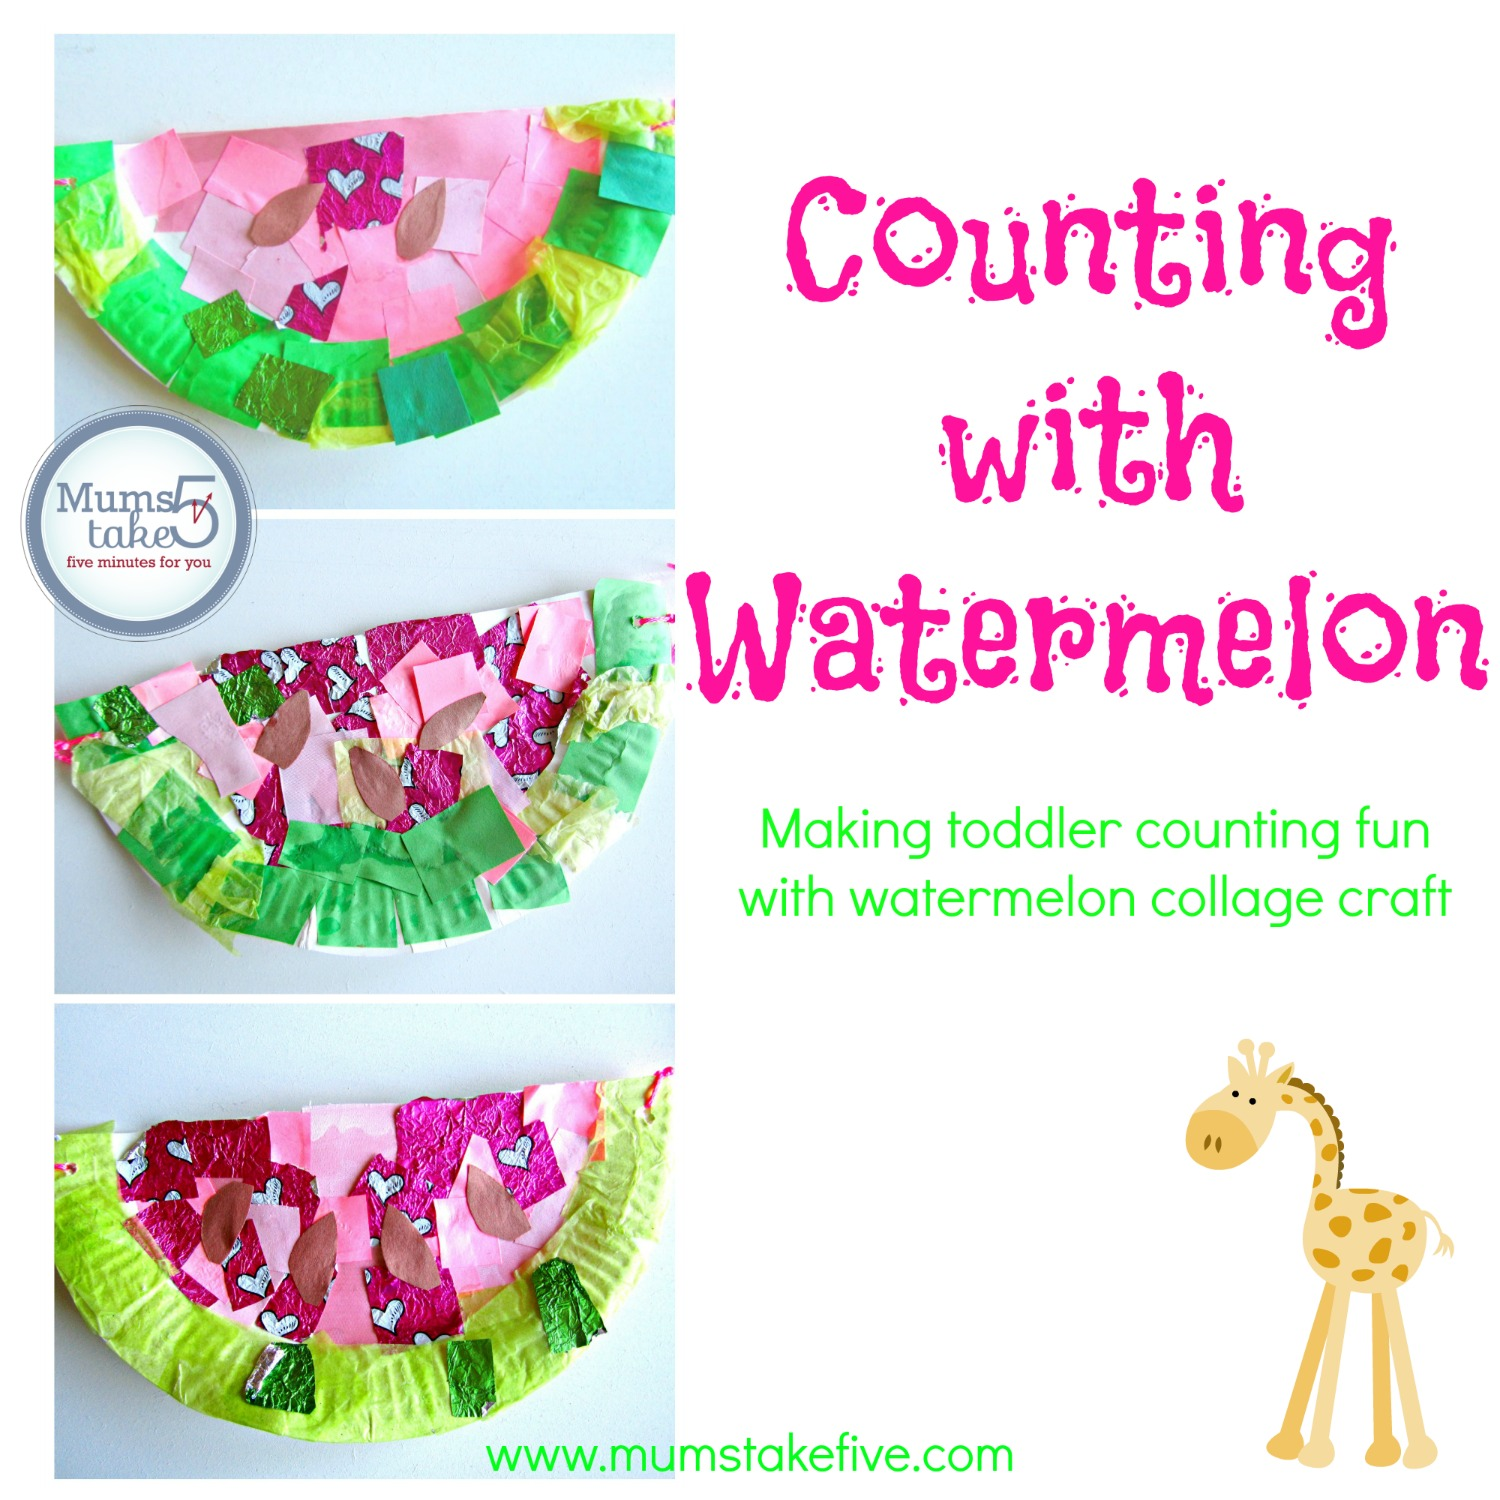 Watermelon Craft - Counting with watermelon